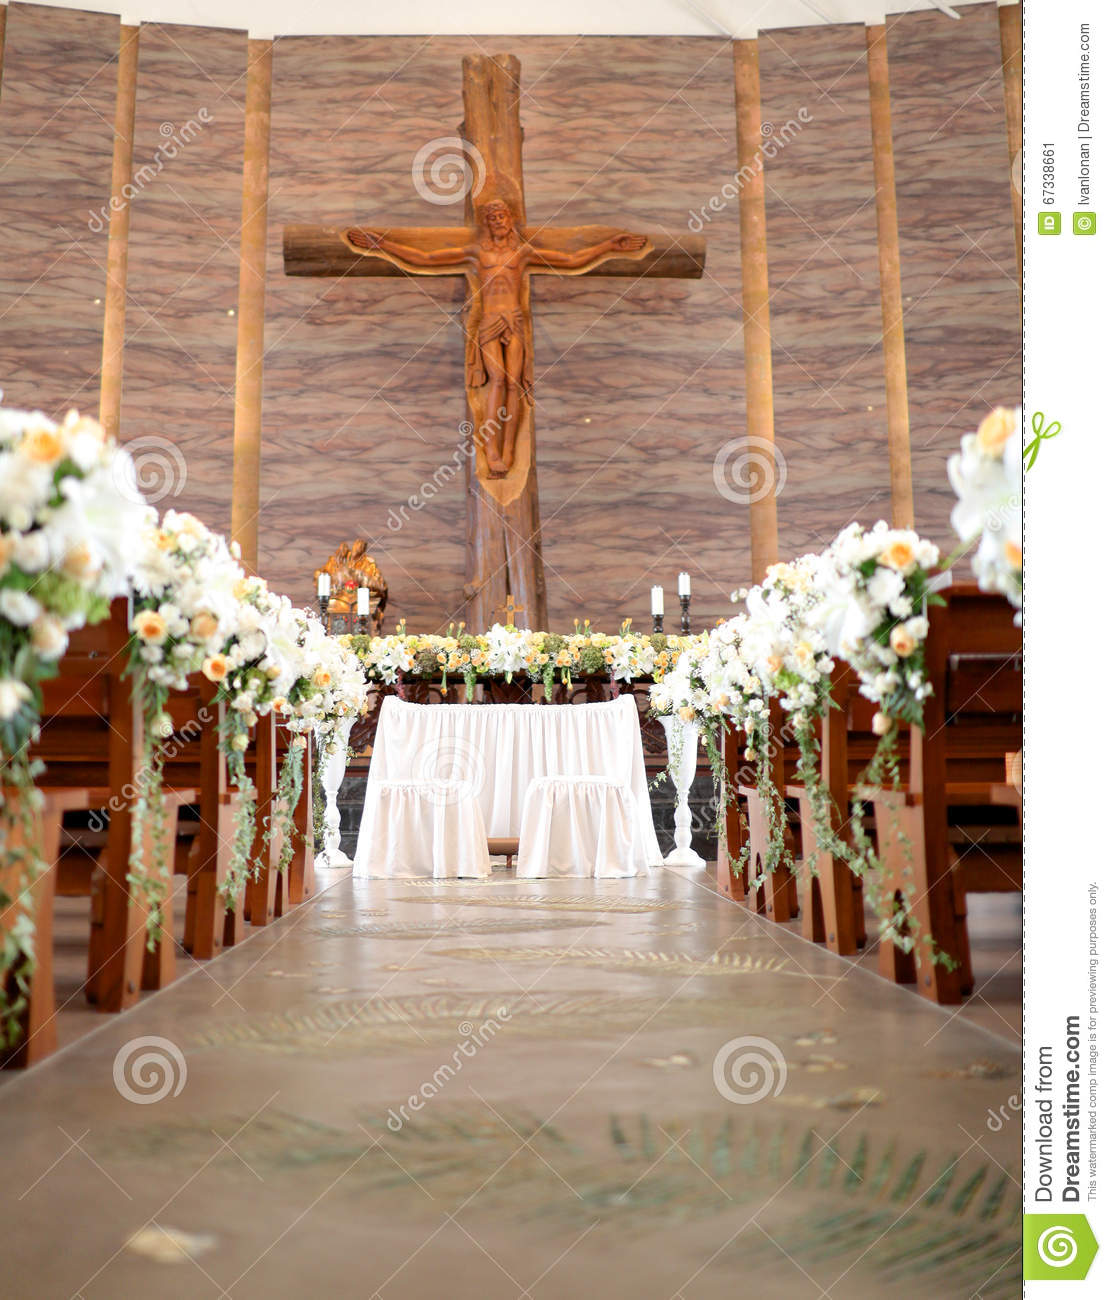 Wedding Altar Prices: Wedding Altar In The Church Stock Image